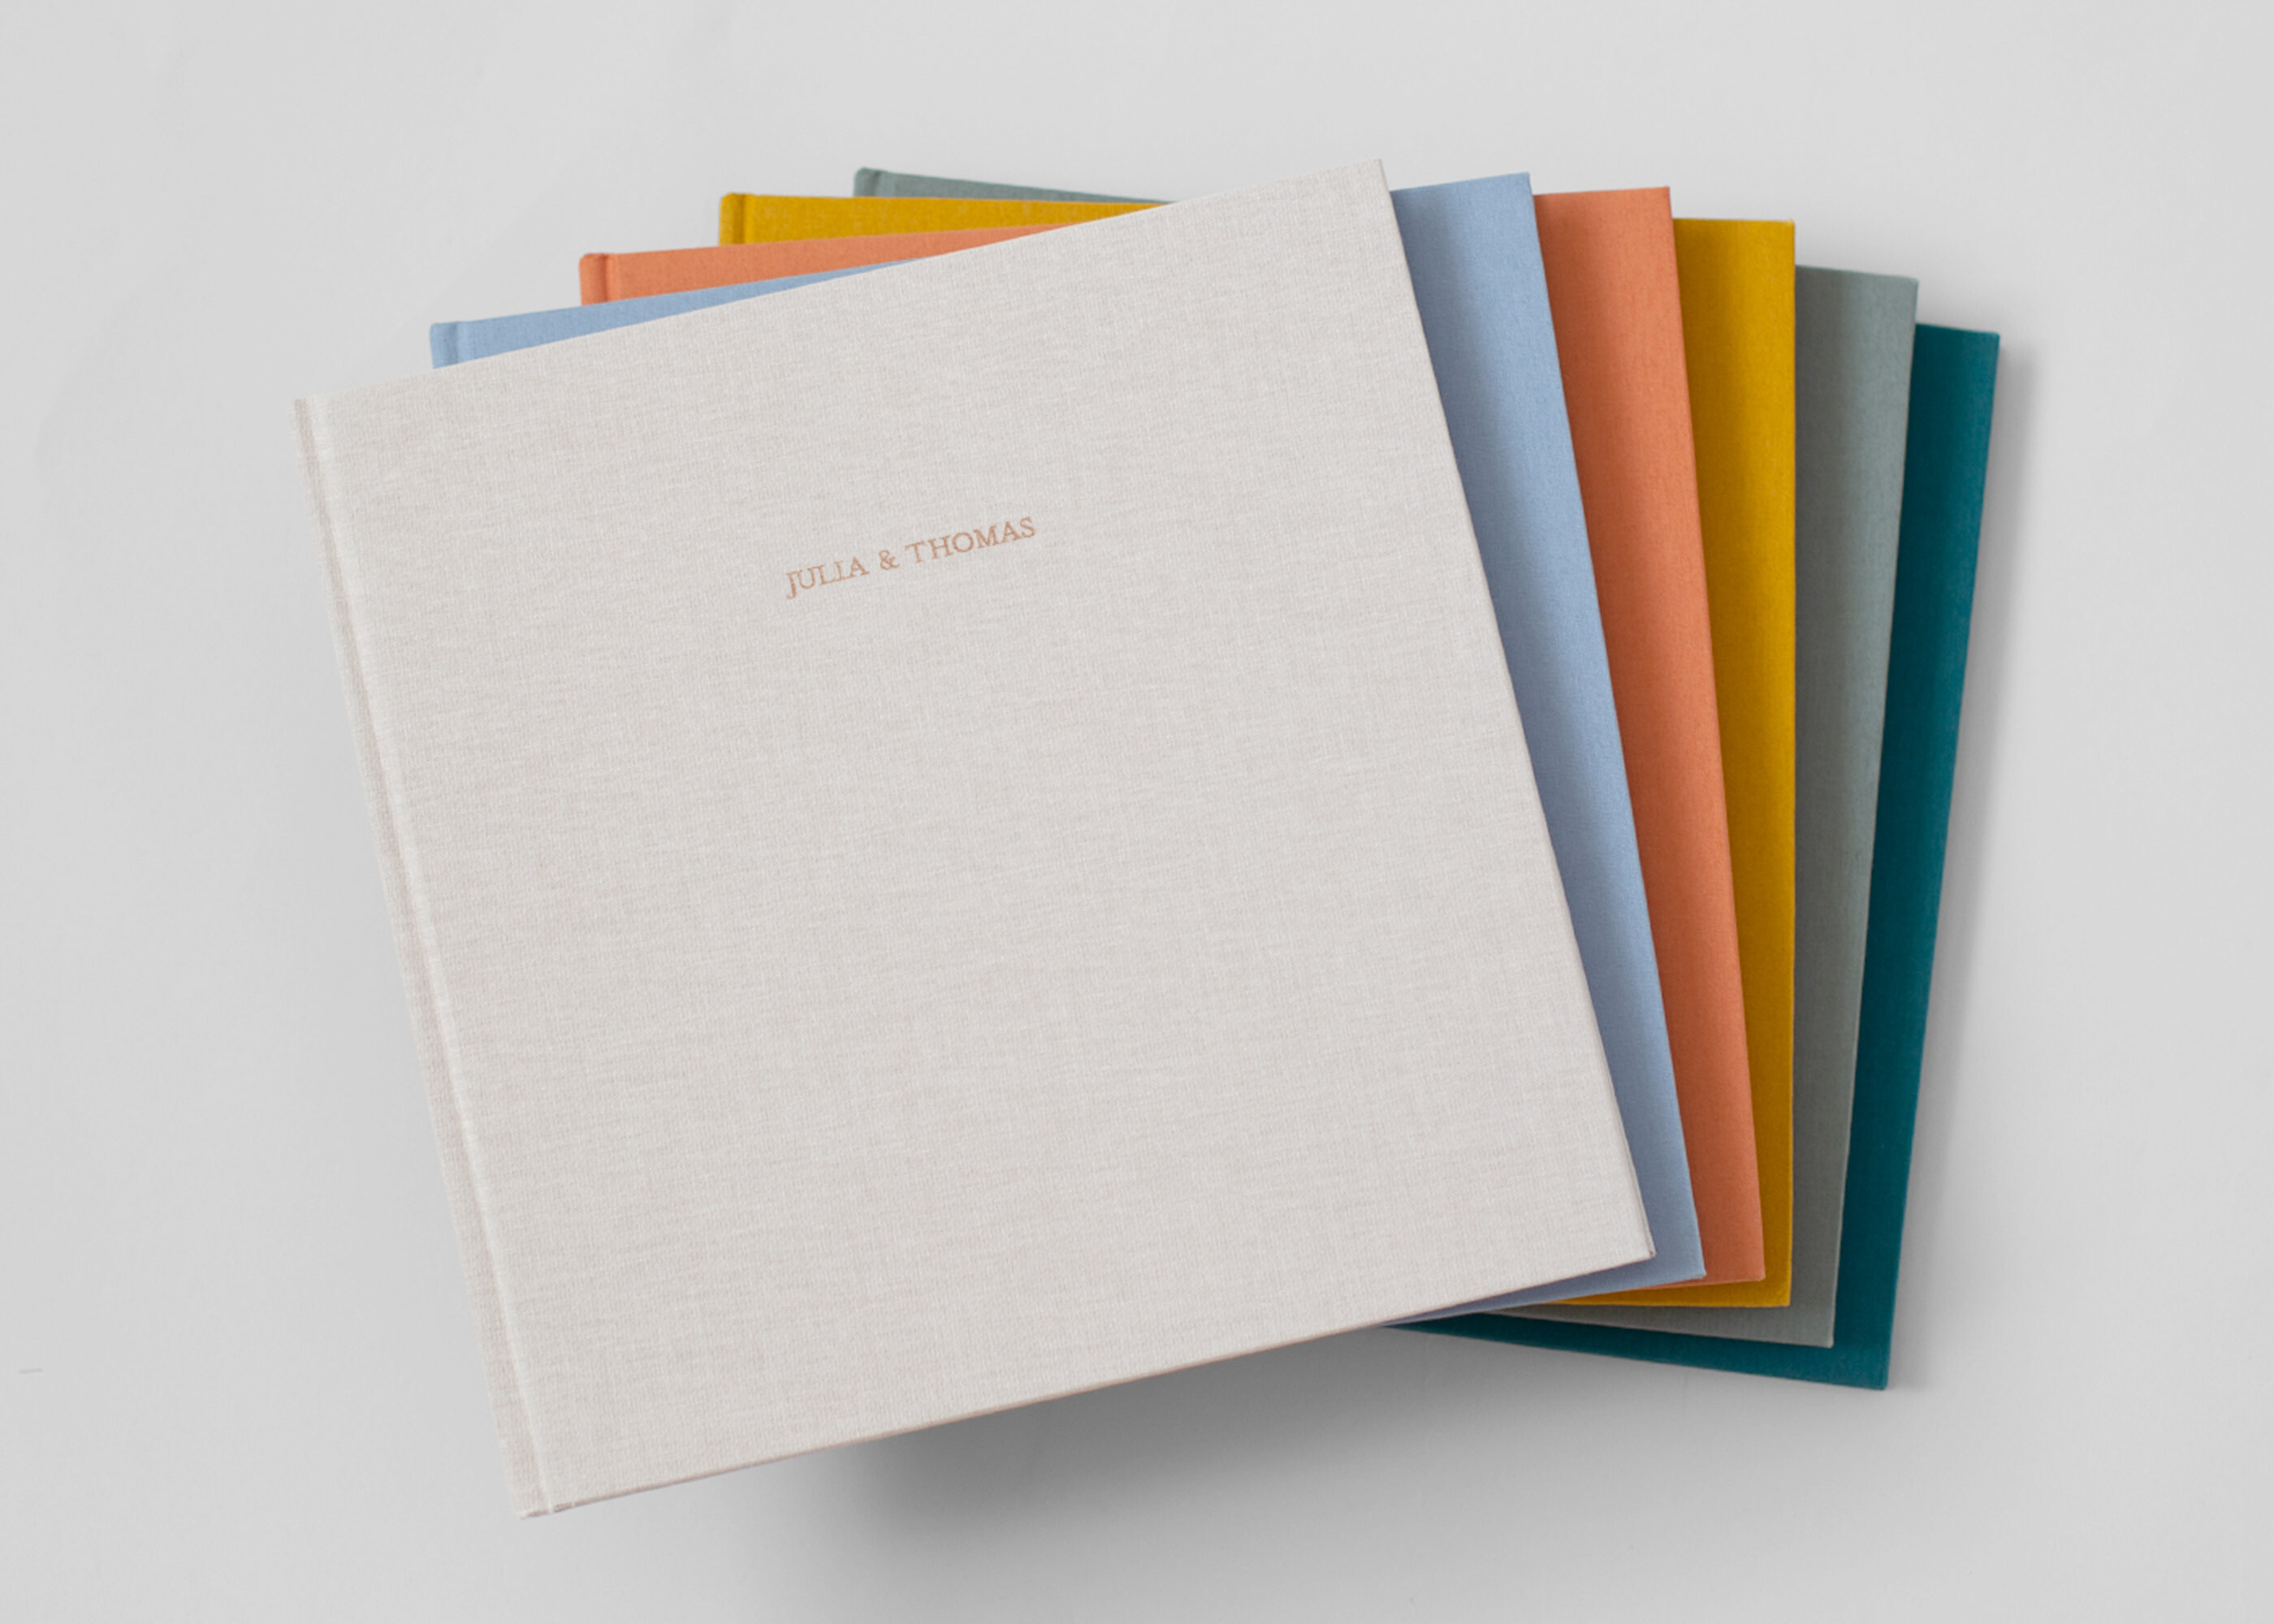 Fabric hardcover photo albums